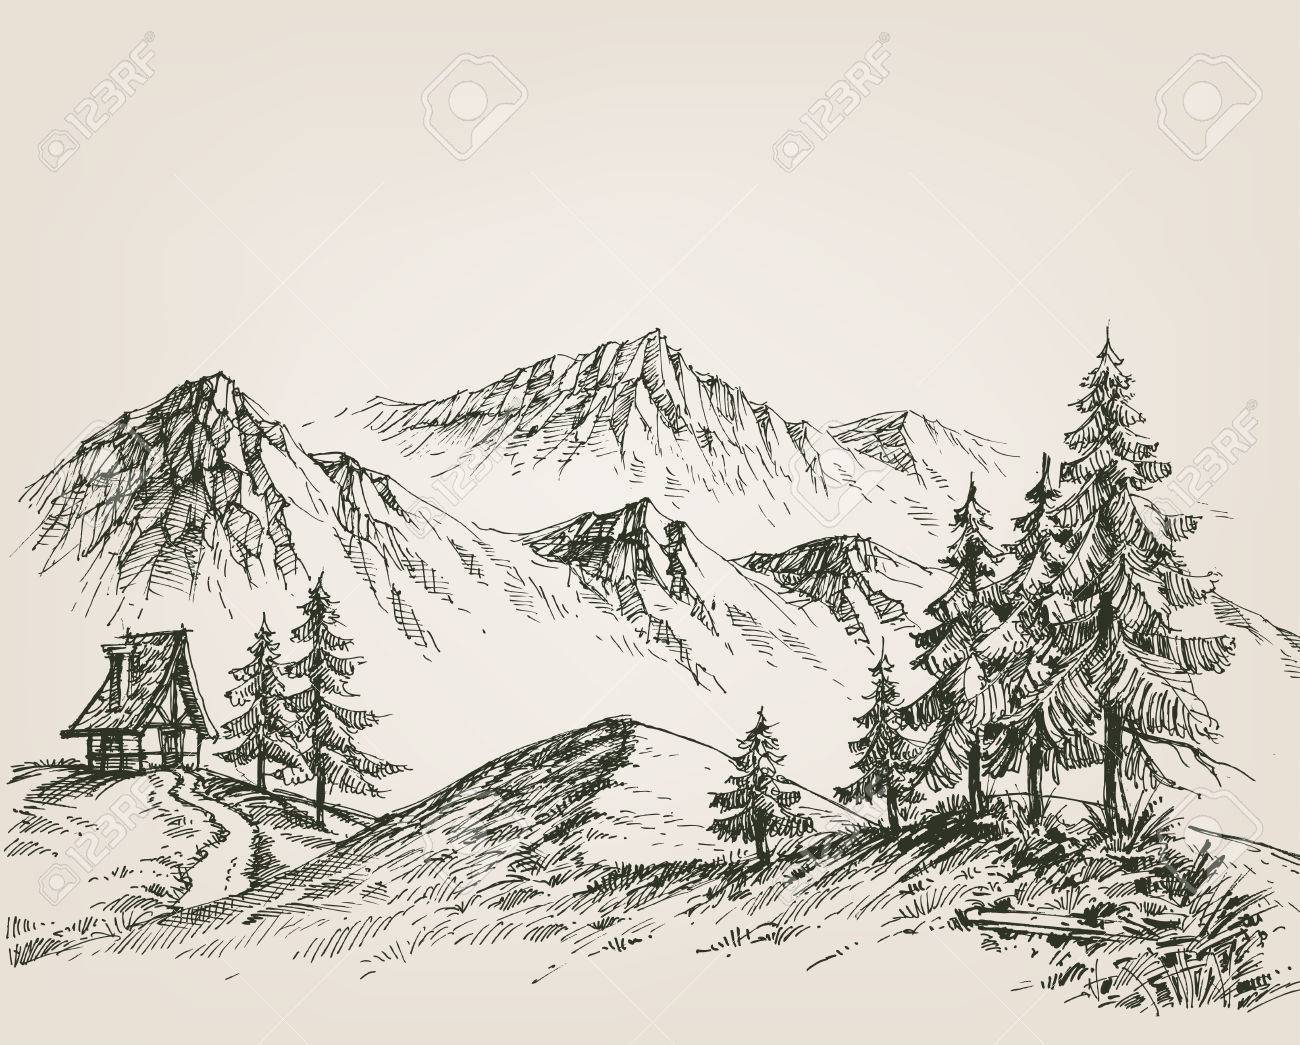 Nature drawing, a hut in the mountains - 58689979